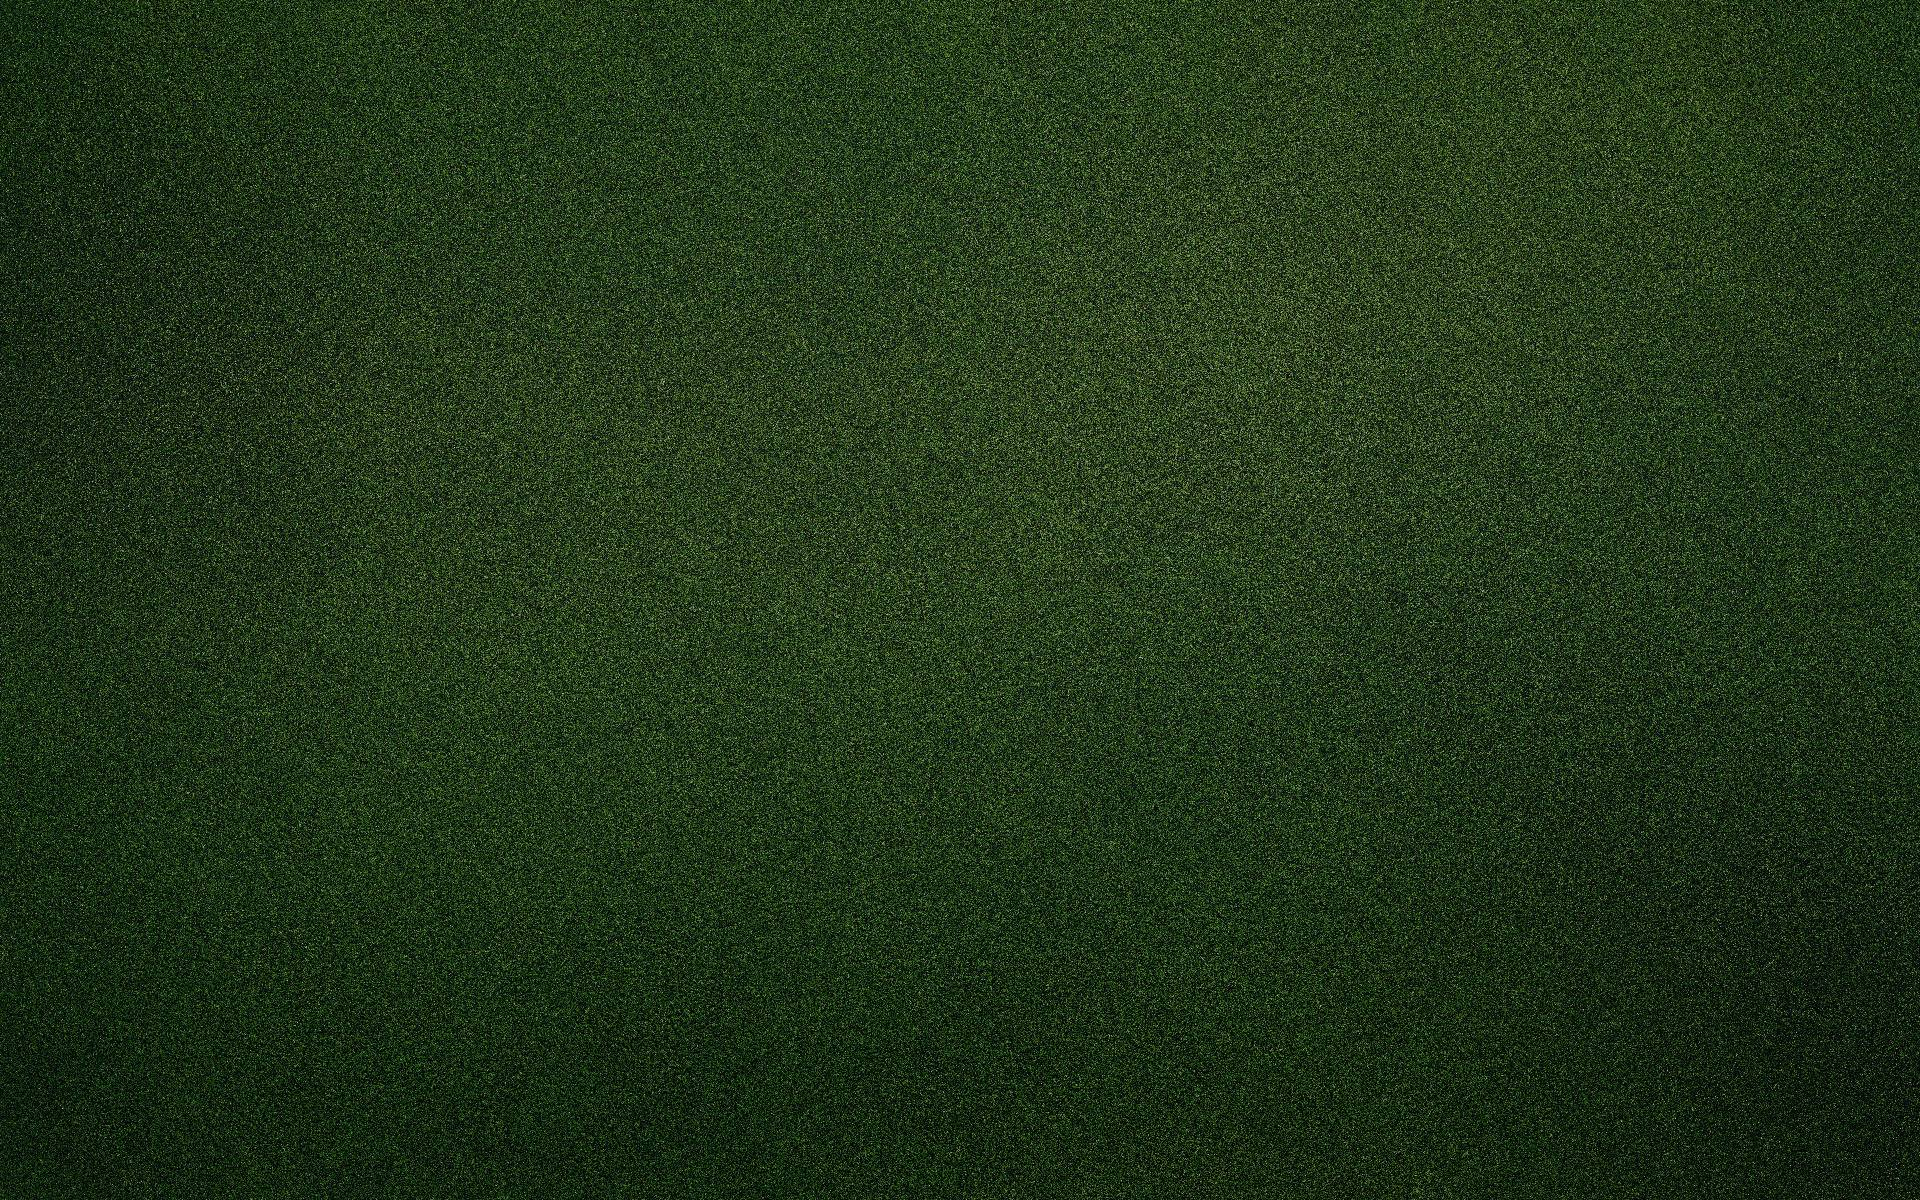 Dark green backgrounds wallpaper cave for Wallpaper mobile home walls